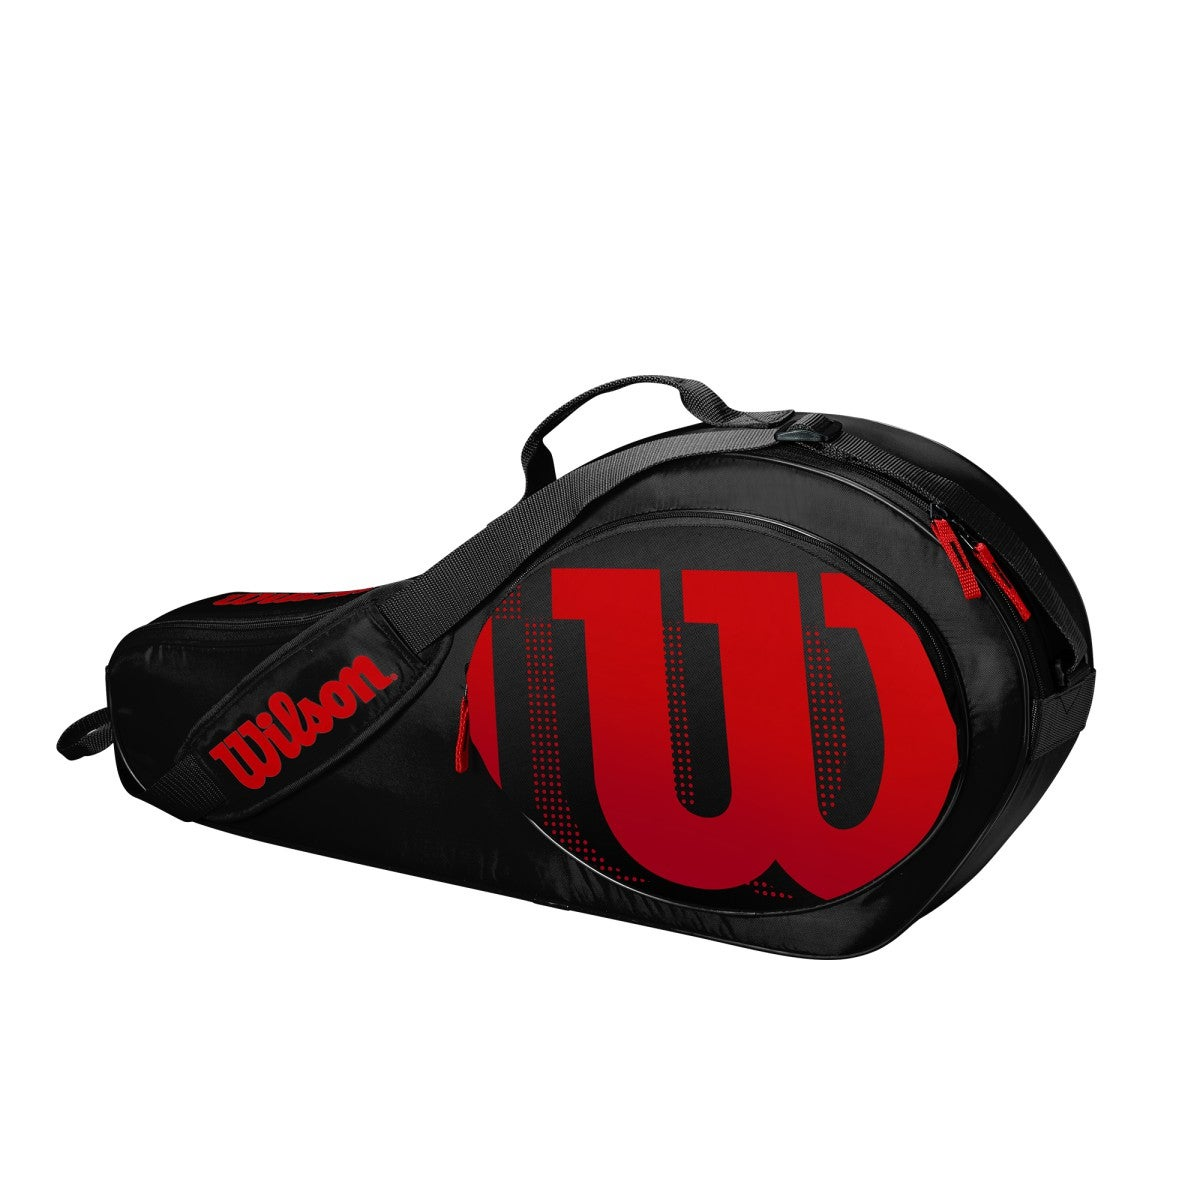 Junior 3 Pack Tennis Bag